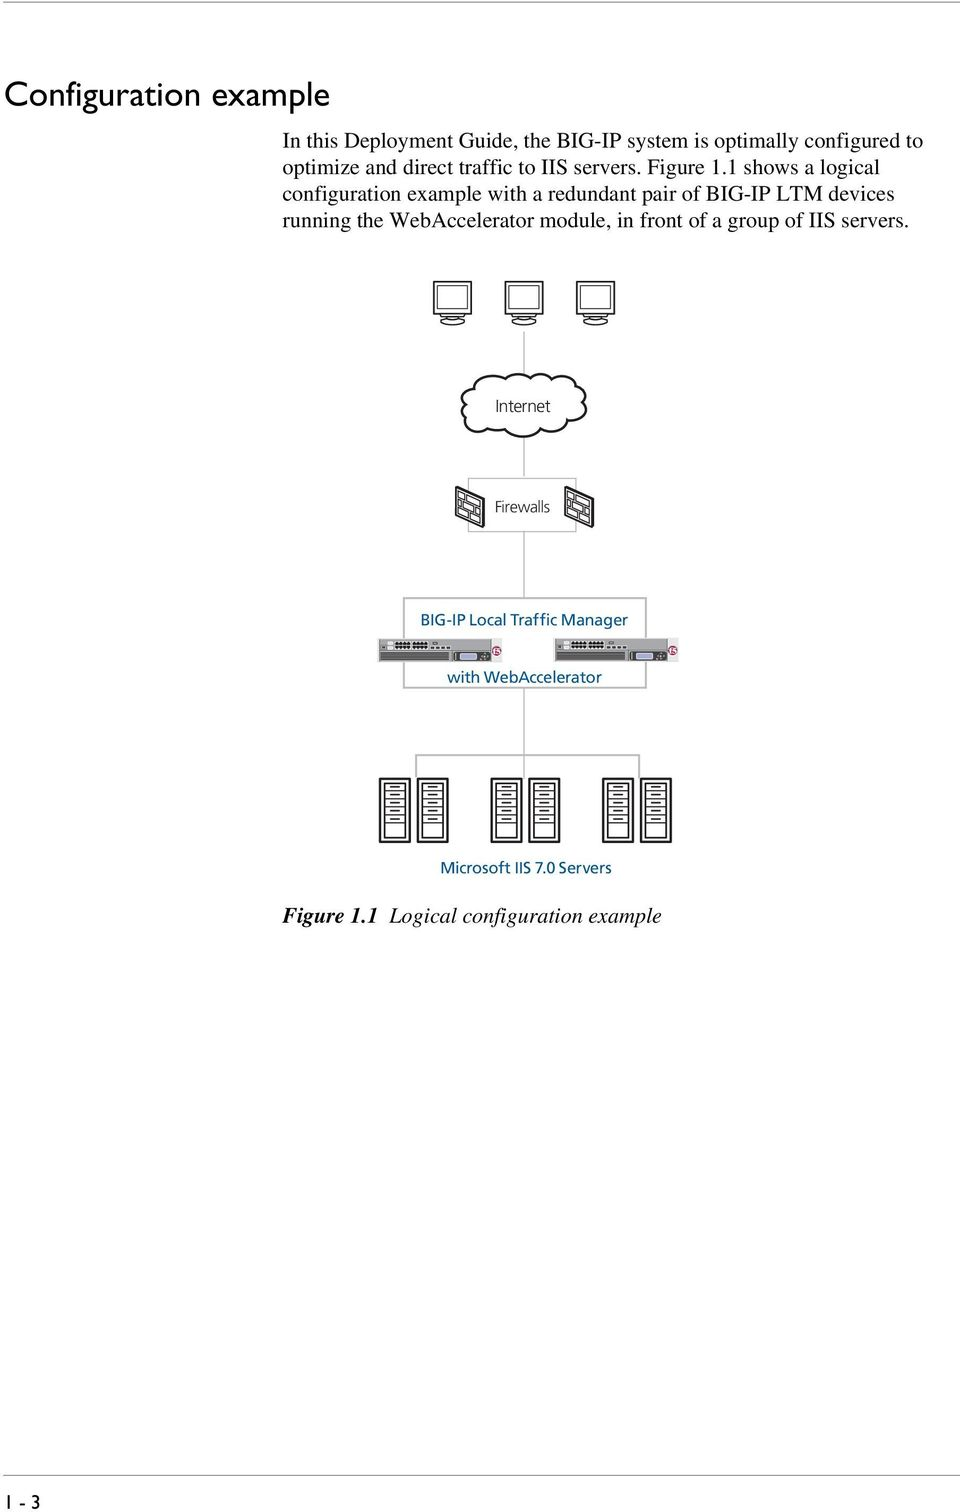 1 shows a logical configuration example with a redundant pair of BIG-IP LTM devices running the